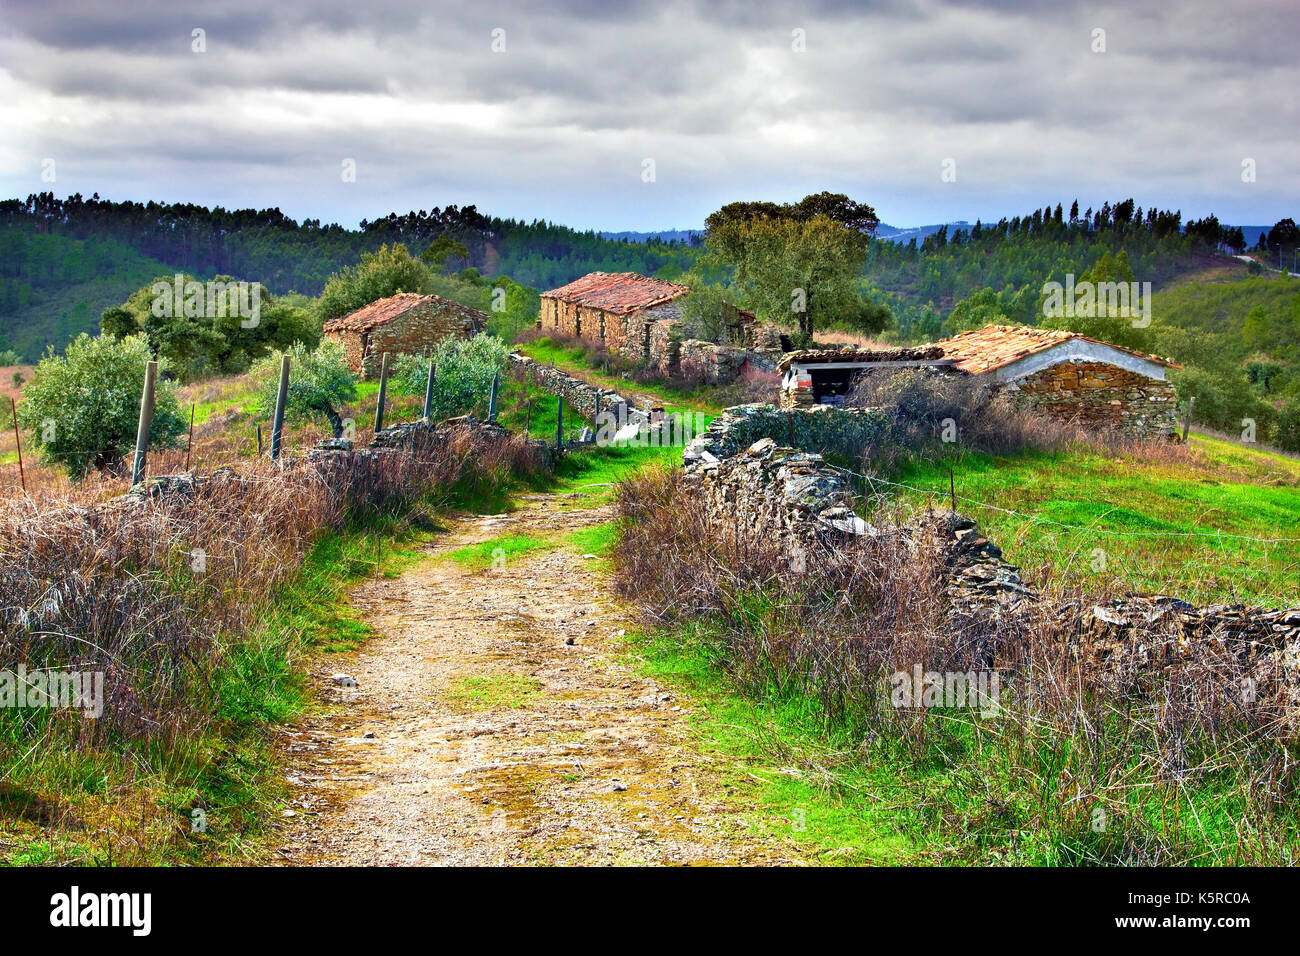 A view of the tranquil hamlet of Silveira in the Centro region of rural Portugal. - Stock Image